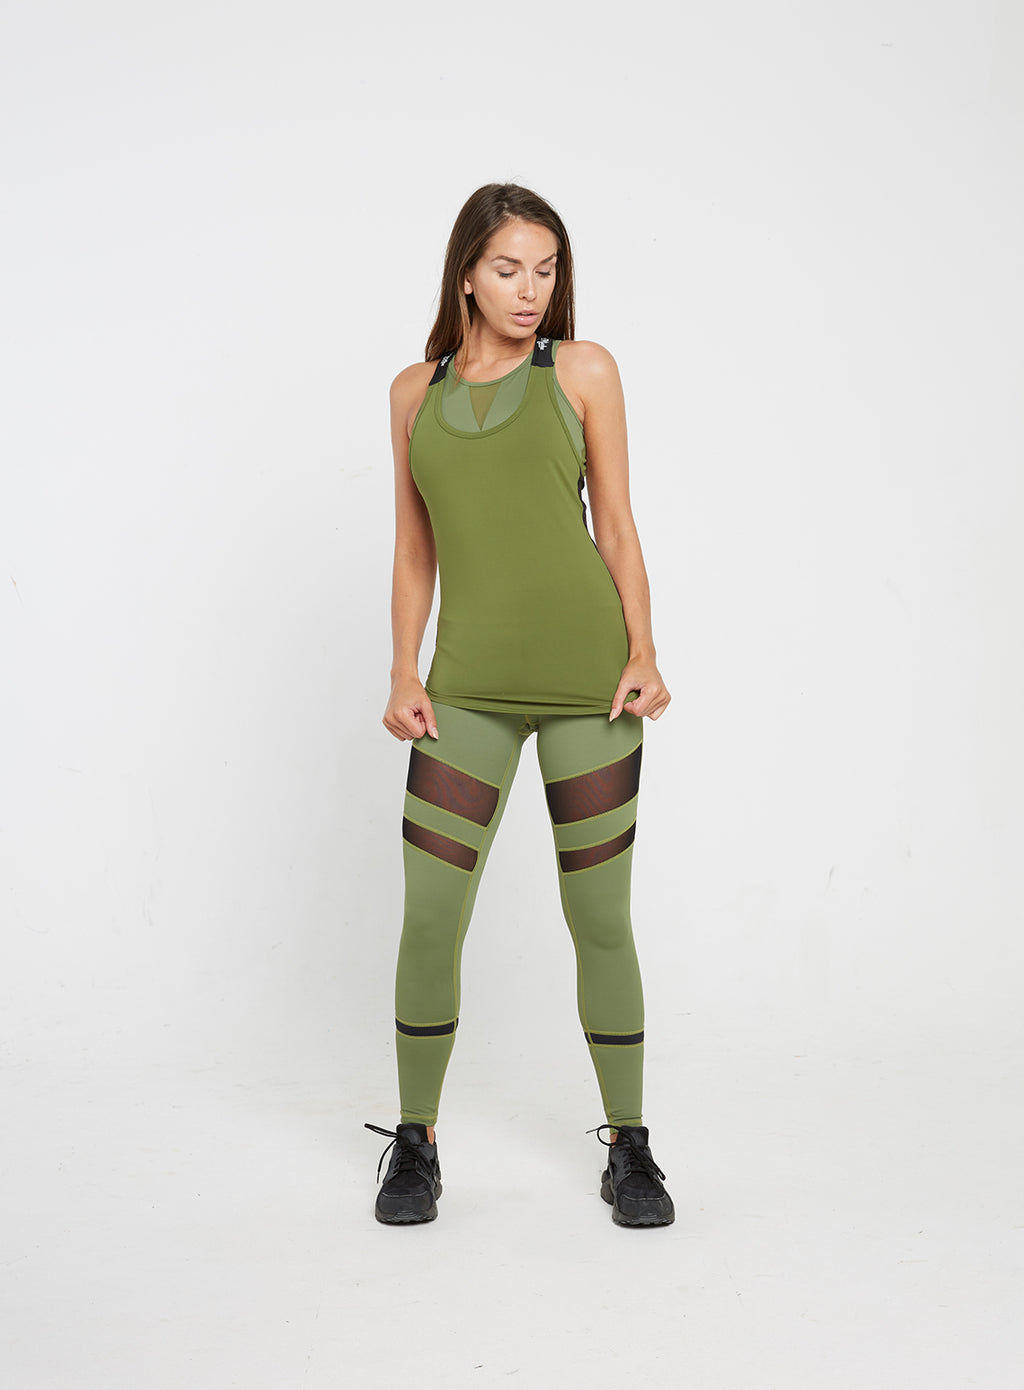 Gym Monkee - Ladies Black and Khaki Strap Top FRONT FULL